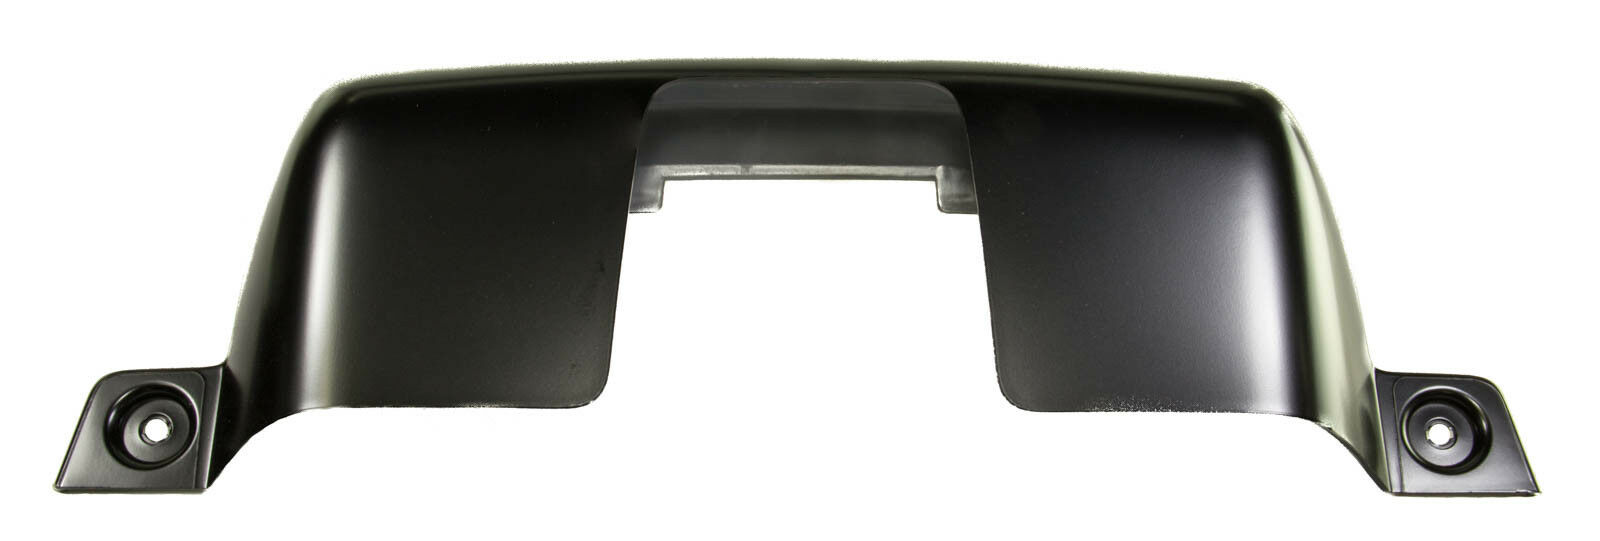 Oem New 07 17 Lincoln Navigator Rear Bumper Trailer Hitch Cover 7 Pin Plug Wiring Diagram 1 Of 5only 3 Available